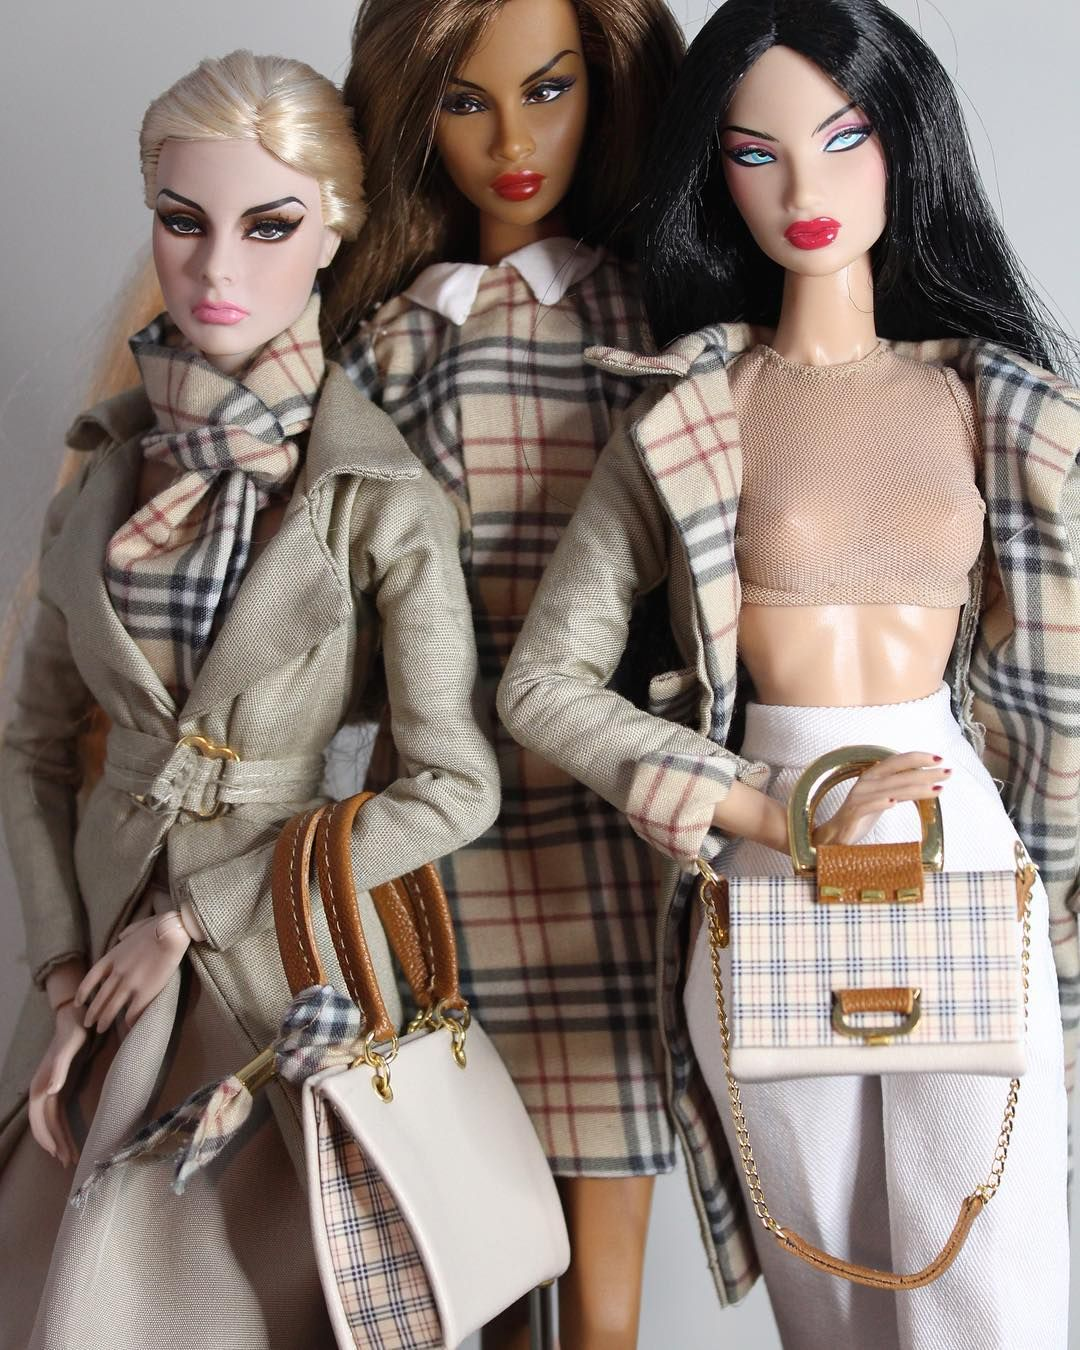 """61ff2975d9a0 Luxe Fashion Dolls on Instagram: """"Burberry Team ❤ #adelemakeda #kyorisato  #agnesvonweiss @burberry @integrity_toys #itluxelife"""""""